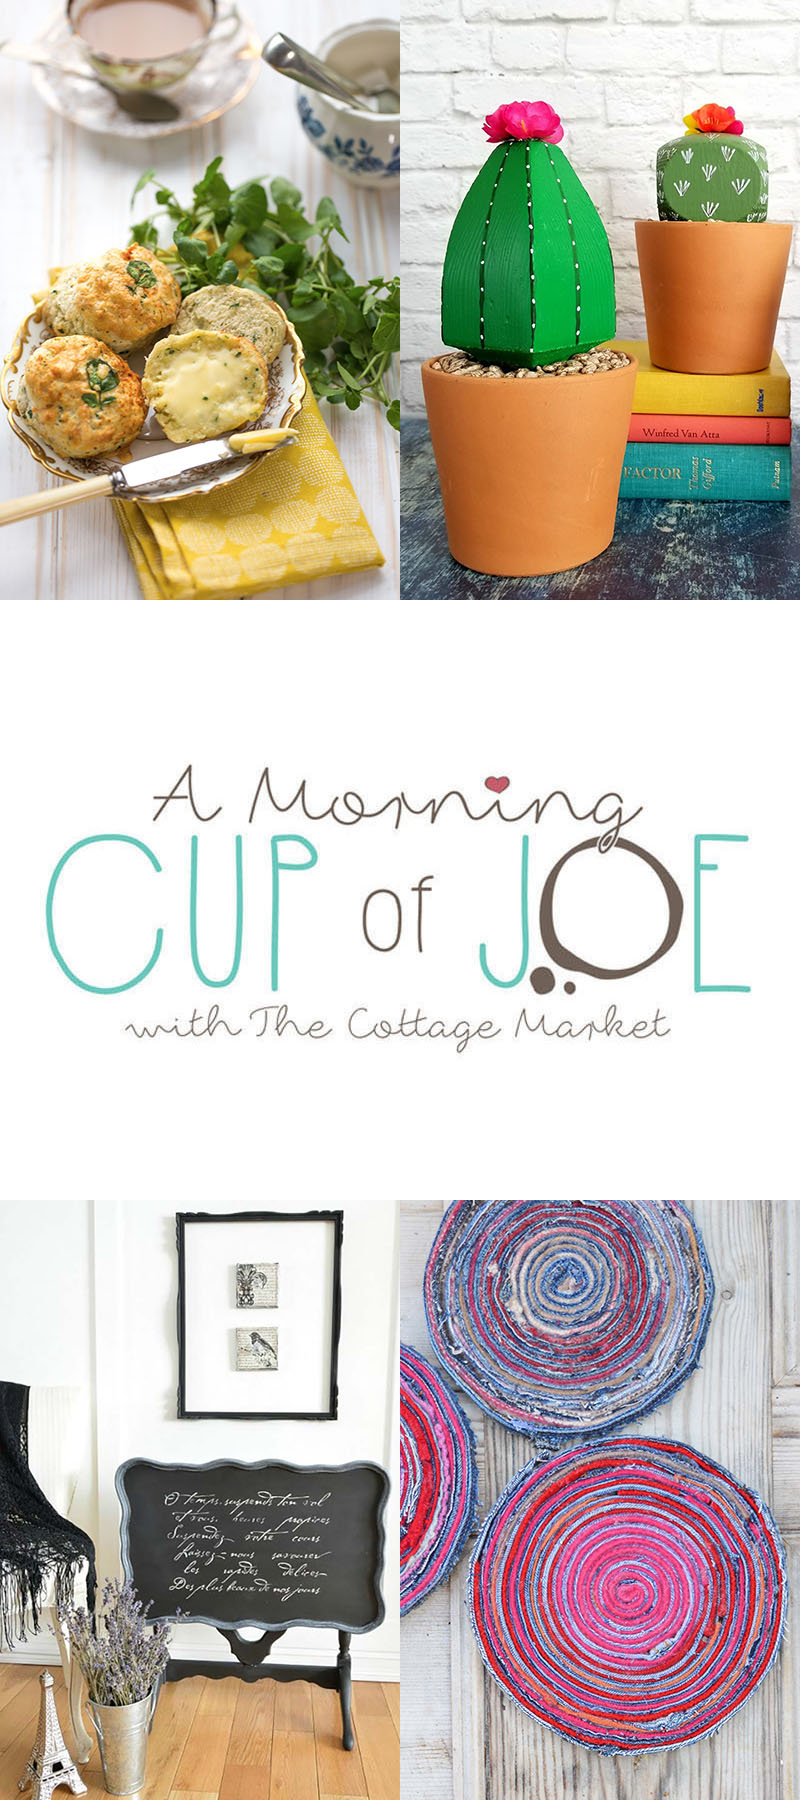 A Morning Cup Of Joe Linky Party with Features is going to make you smile! You get to check out some cool features then share your newest creations!